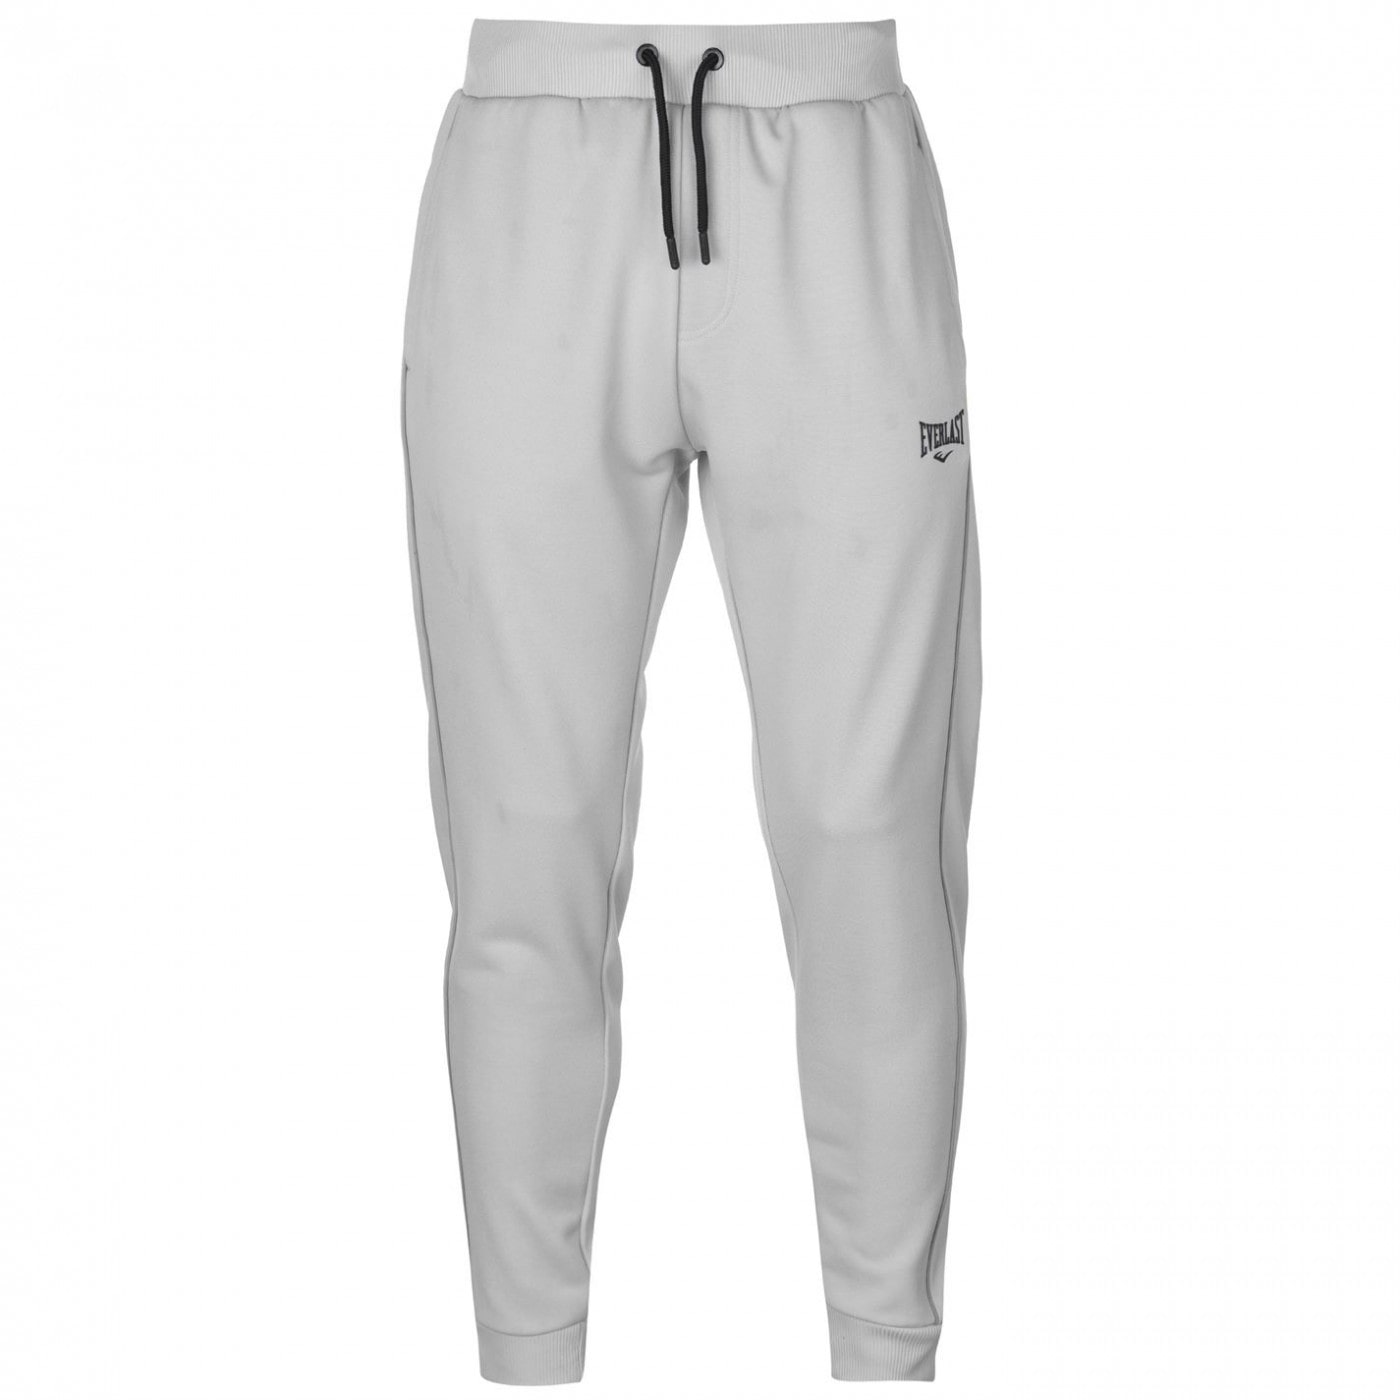 Everlast Ref Jogging Pants Mens